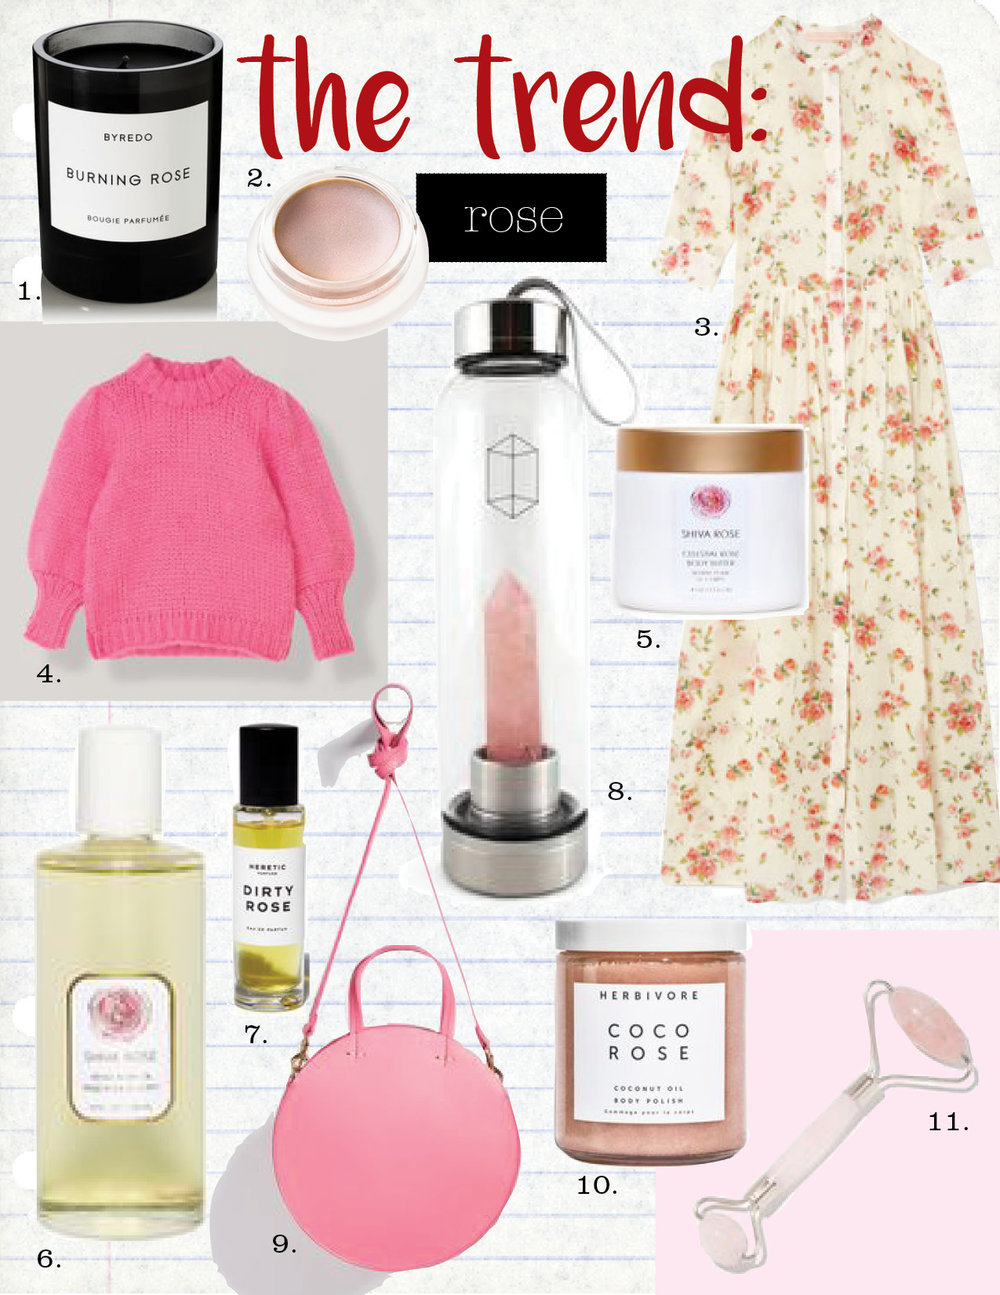 1. byredo burning rose scented candle, $80,  net-a-porter.com  2. rms beauty champagne rose luminizer, $38,  goop.com  3. brock collection disco button-up short-sleeve dress, $1690,  goop.com  4. ganni the julliard mohair puff sleeve pullover, $450,  ganni.com  5. shiva rose sea siren body scrub, $65,  goop.com  6. shiva rose venus amber body oil, $80,  goop.com  7. heretic dirty rose, $65,  goop.com  8. glacce rose quartz bottle, $80,  goop.com   9. Clare v. petit alistar bag, $365,  shopbop.com  10. herbivore botanicals coco rose body polish, $36,  goop.com  11. goop rose quartz soothing face-massage roller, $45,  goop.com